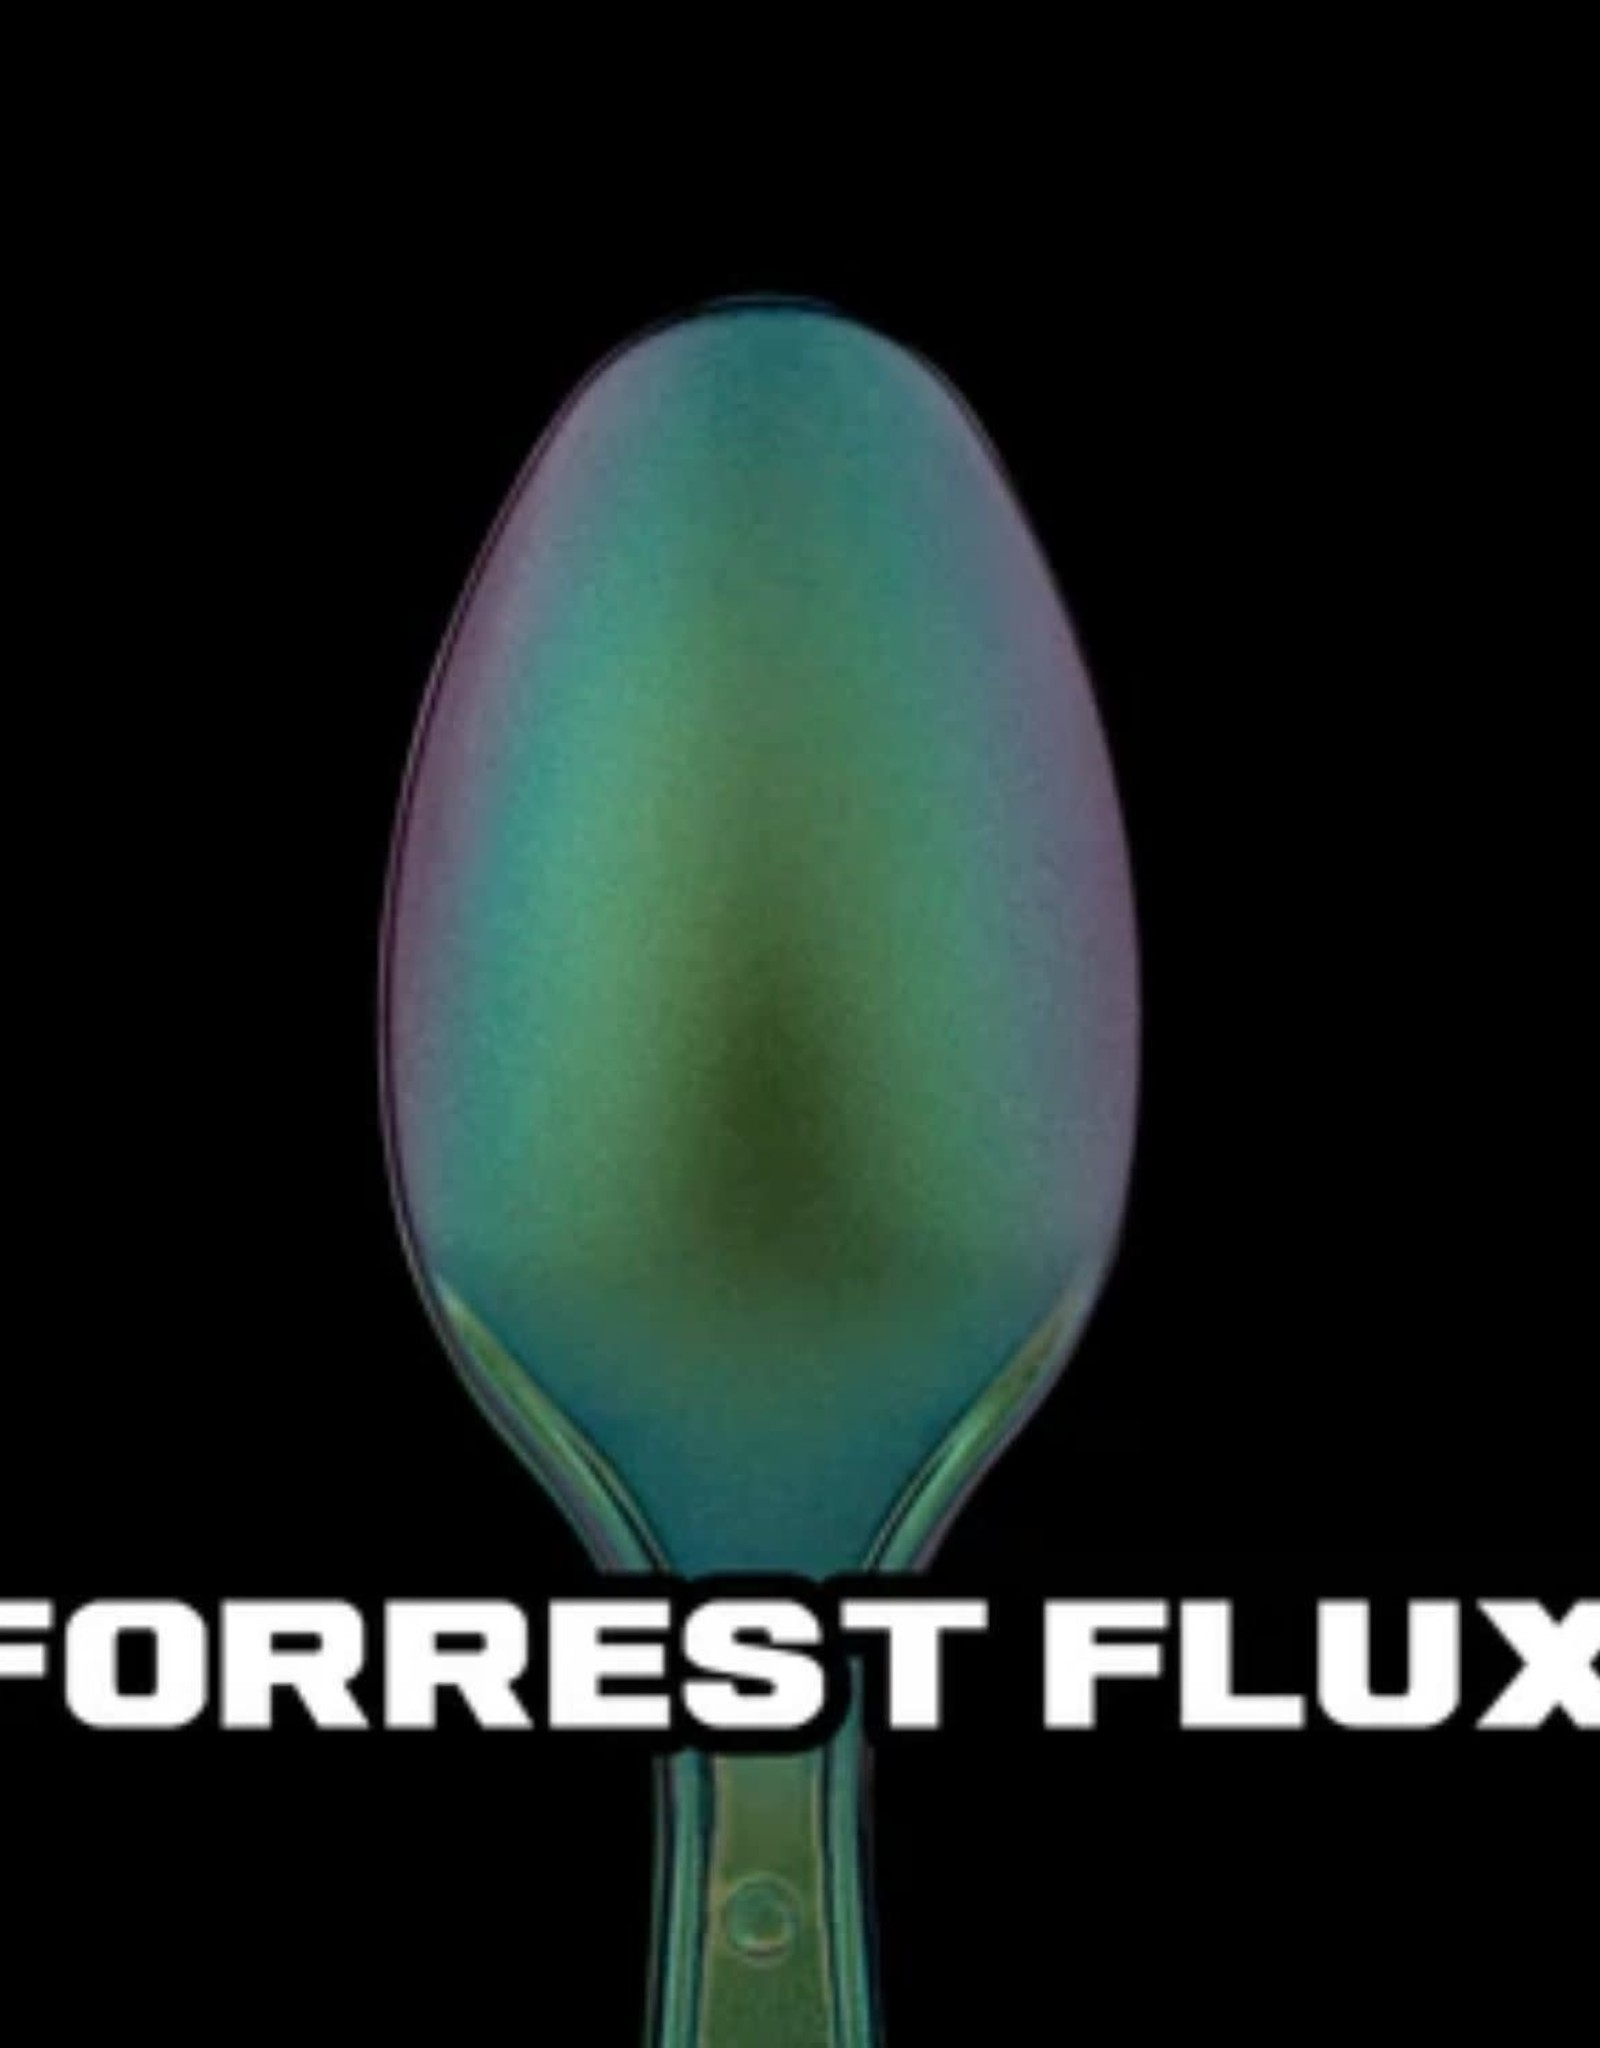 Turbo Dork Forrest Flux - Turboshift